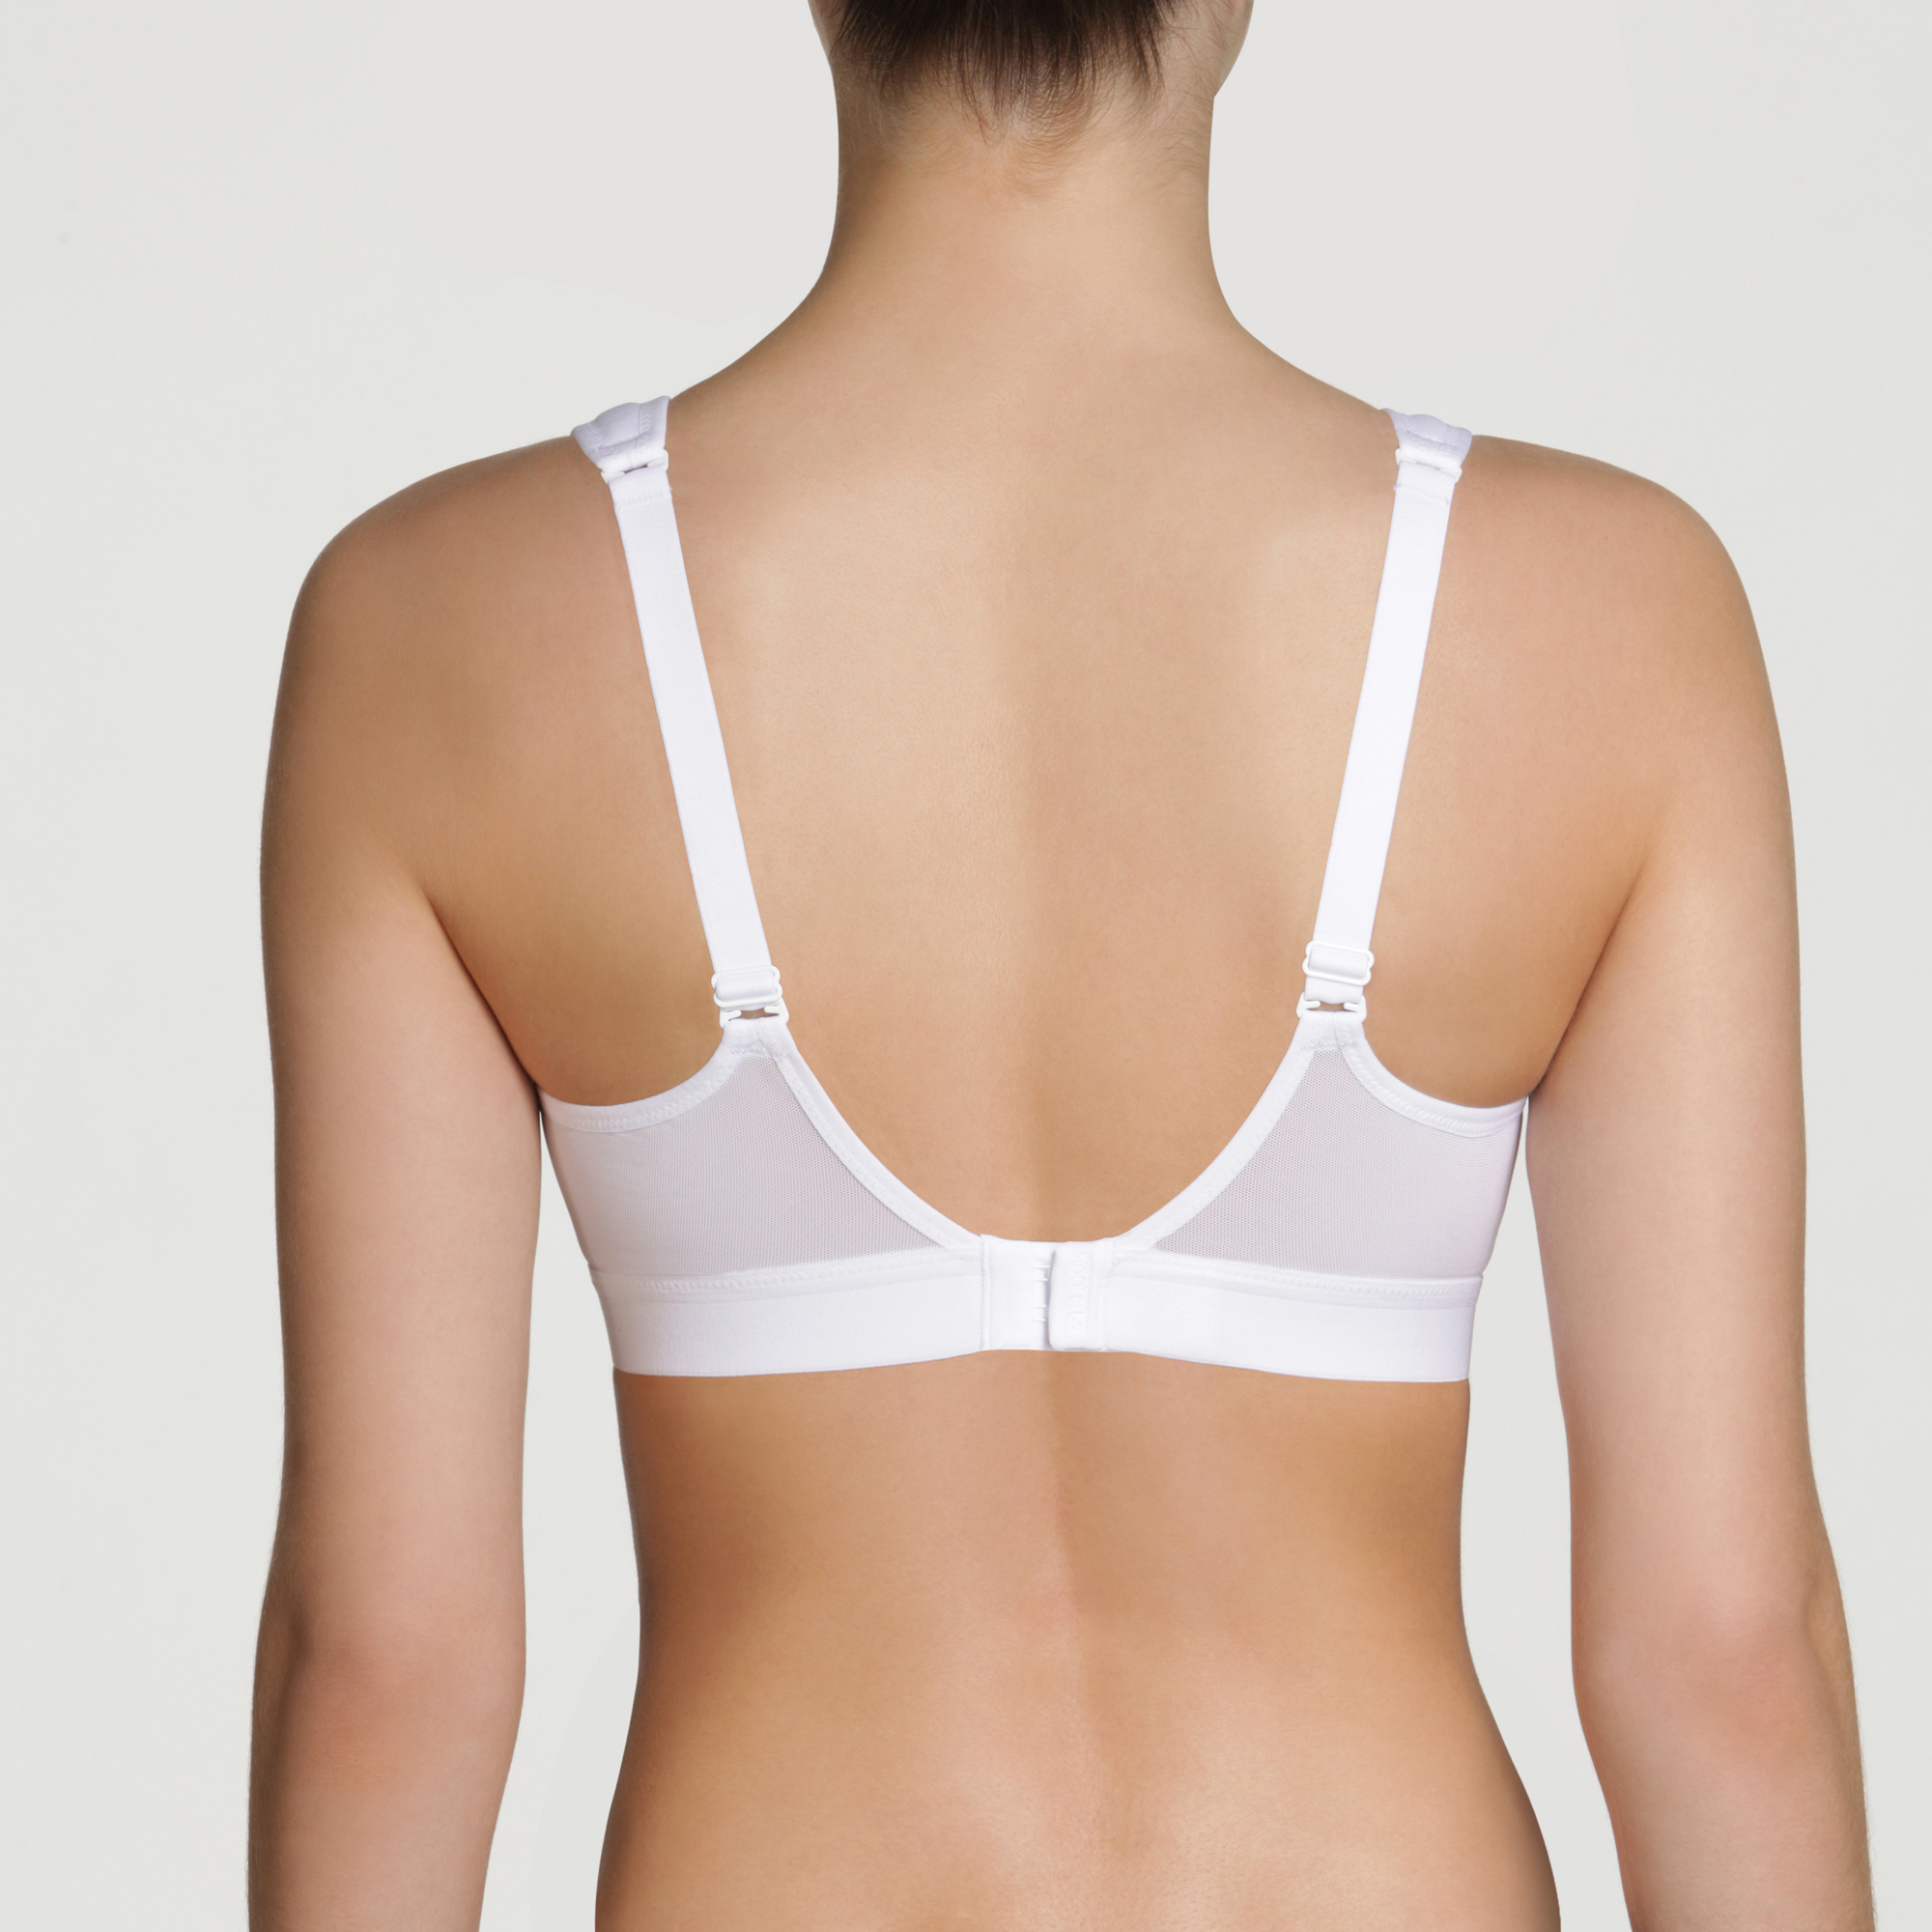 Soutien-gorge sport blanc Active Classic Support Shock Absorber, , DIM